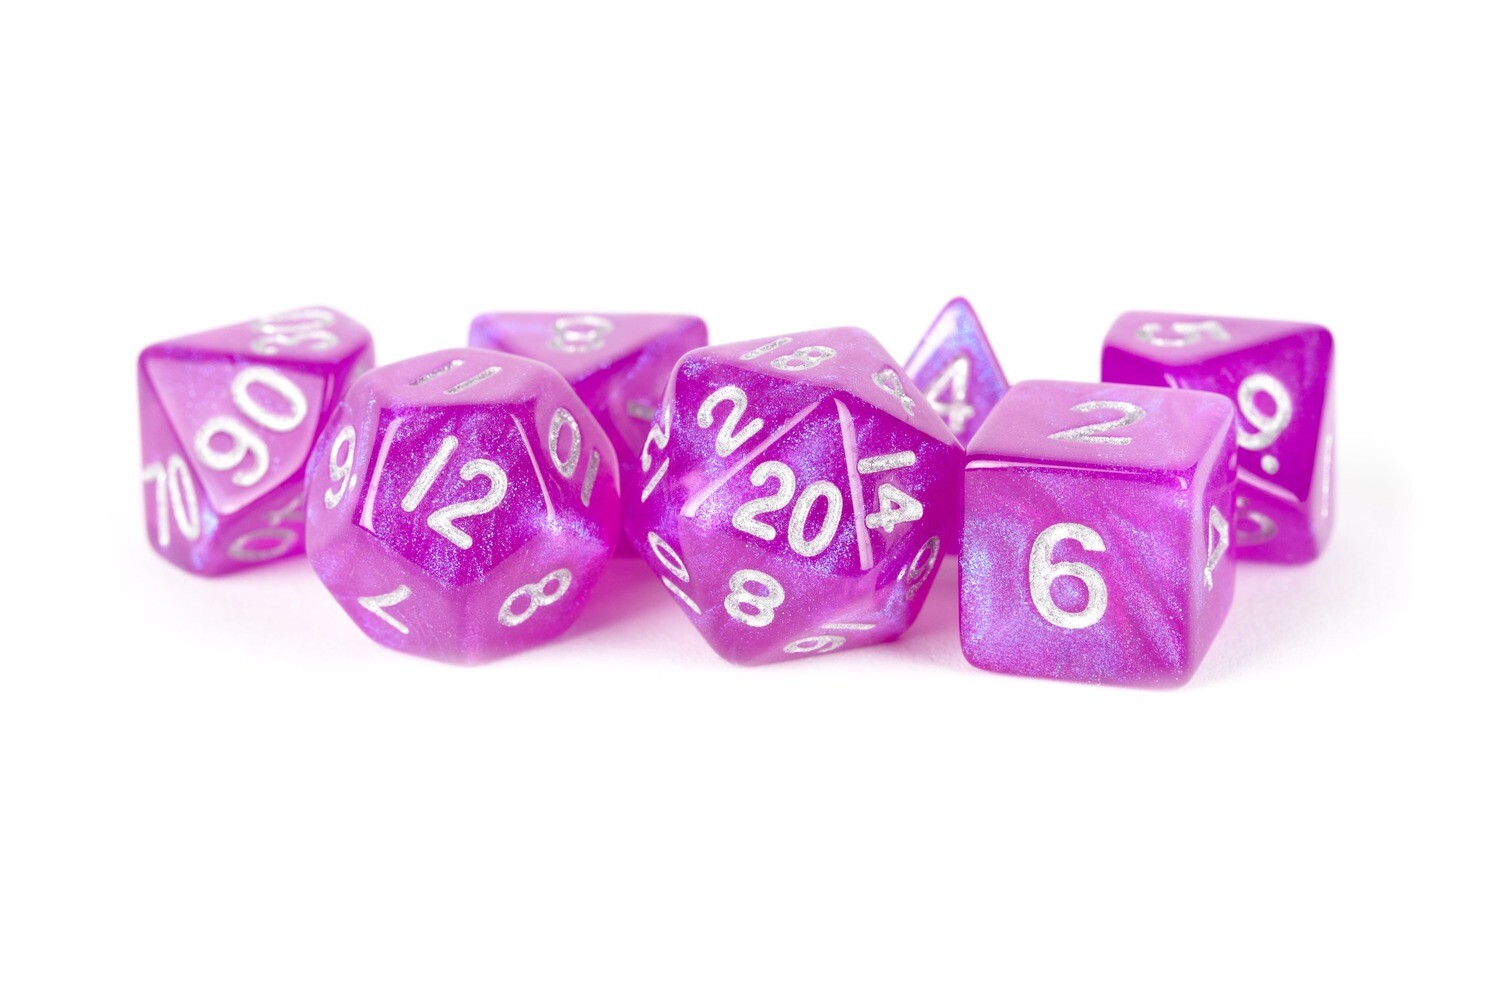 Stardust Purple 16mm Poly Dice Set Tabletop RPG Gaming Roleplay Games